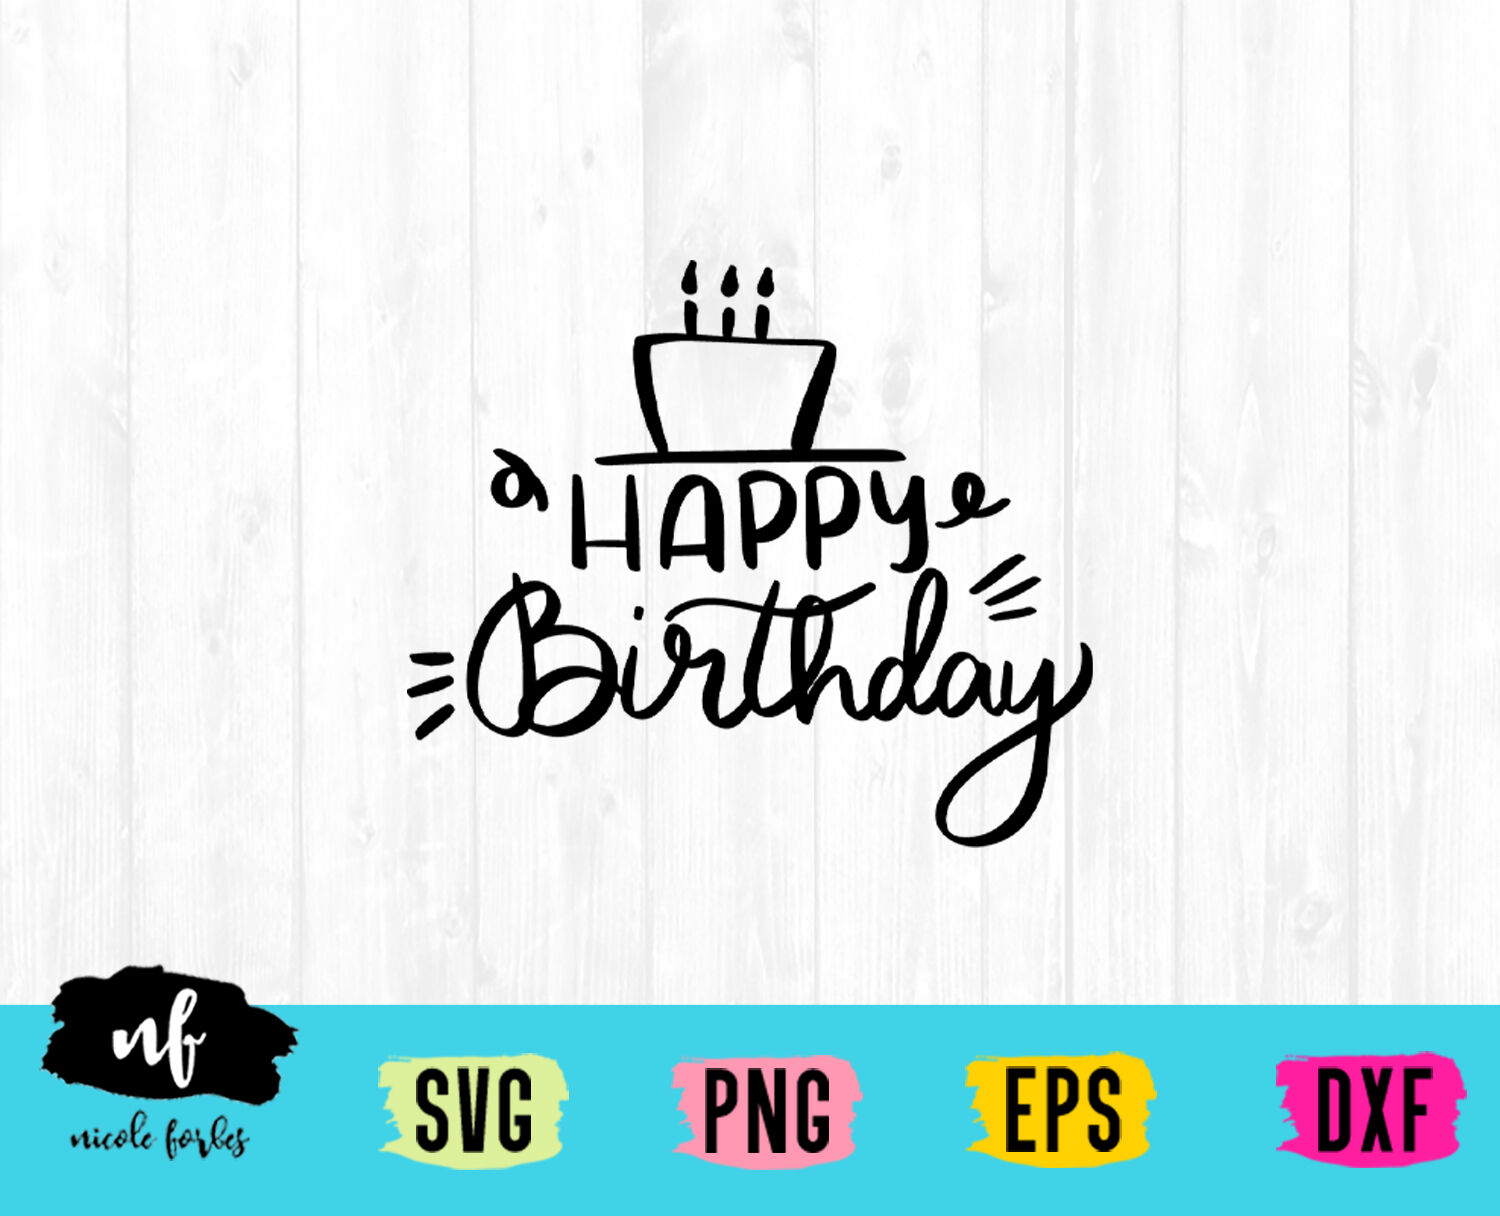 Happy Birthday Svg Cut File By Nicole Forbes Designs